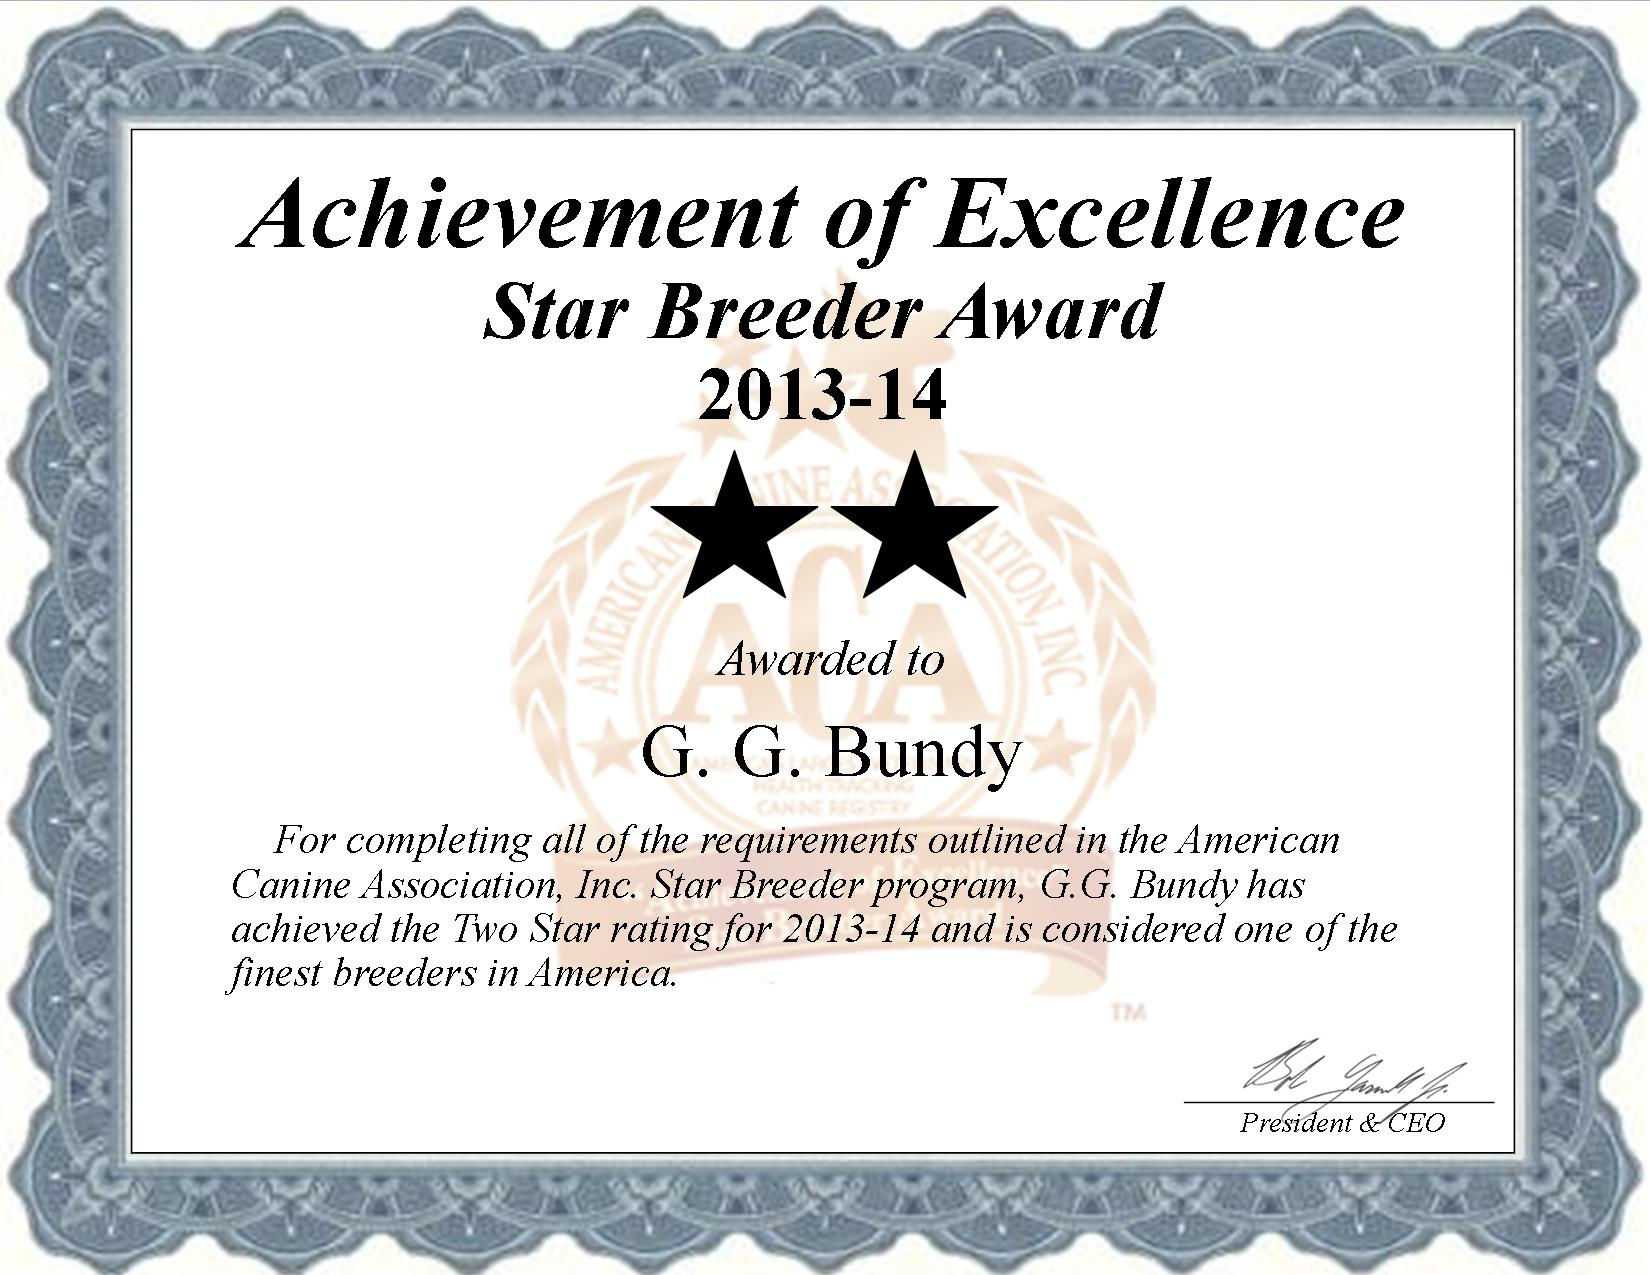 GG, Bundy, GG Bundy, Bundy Kennel, breeder, star breeder, aca, star breeder, 2 star, shell knob, shellknob, Missouri, MO, dog, puppy, puppies